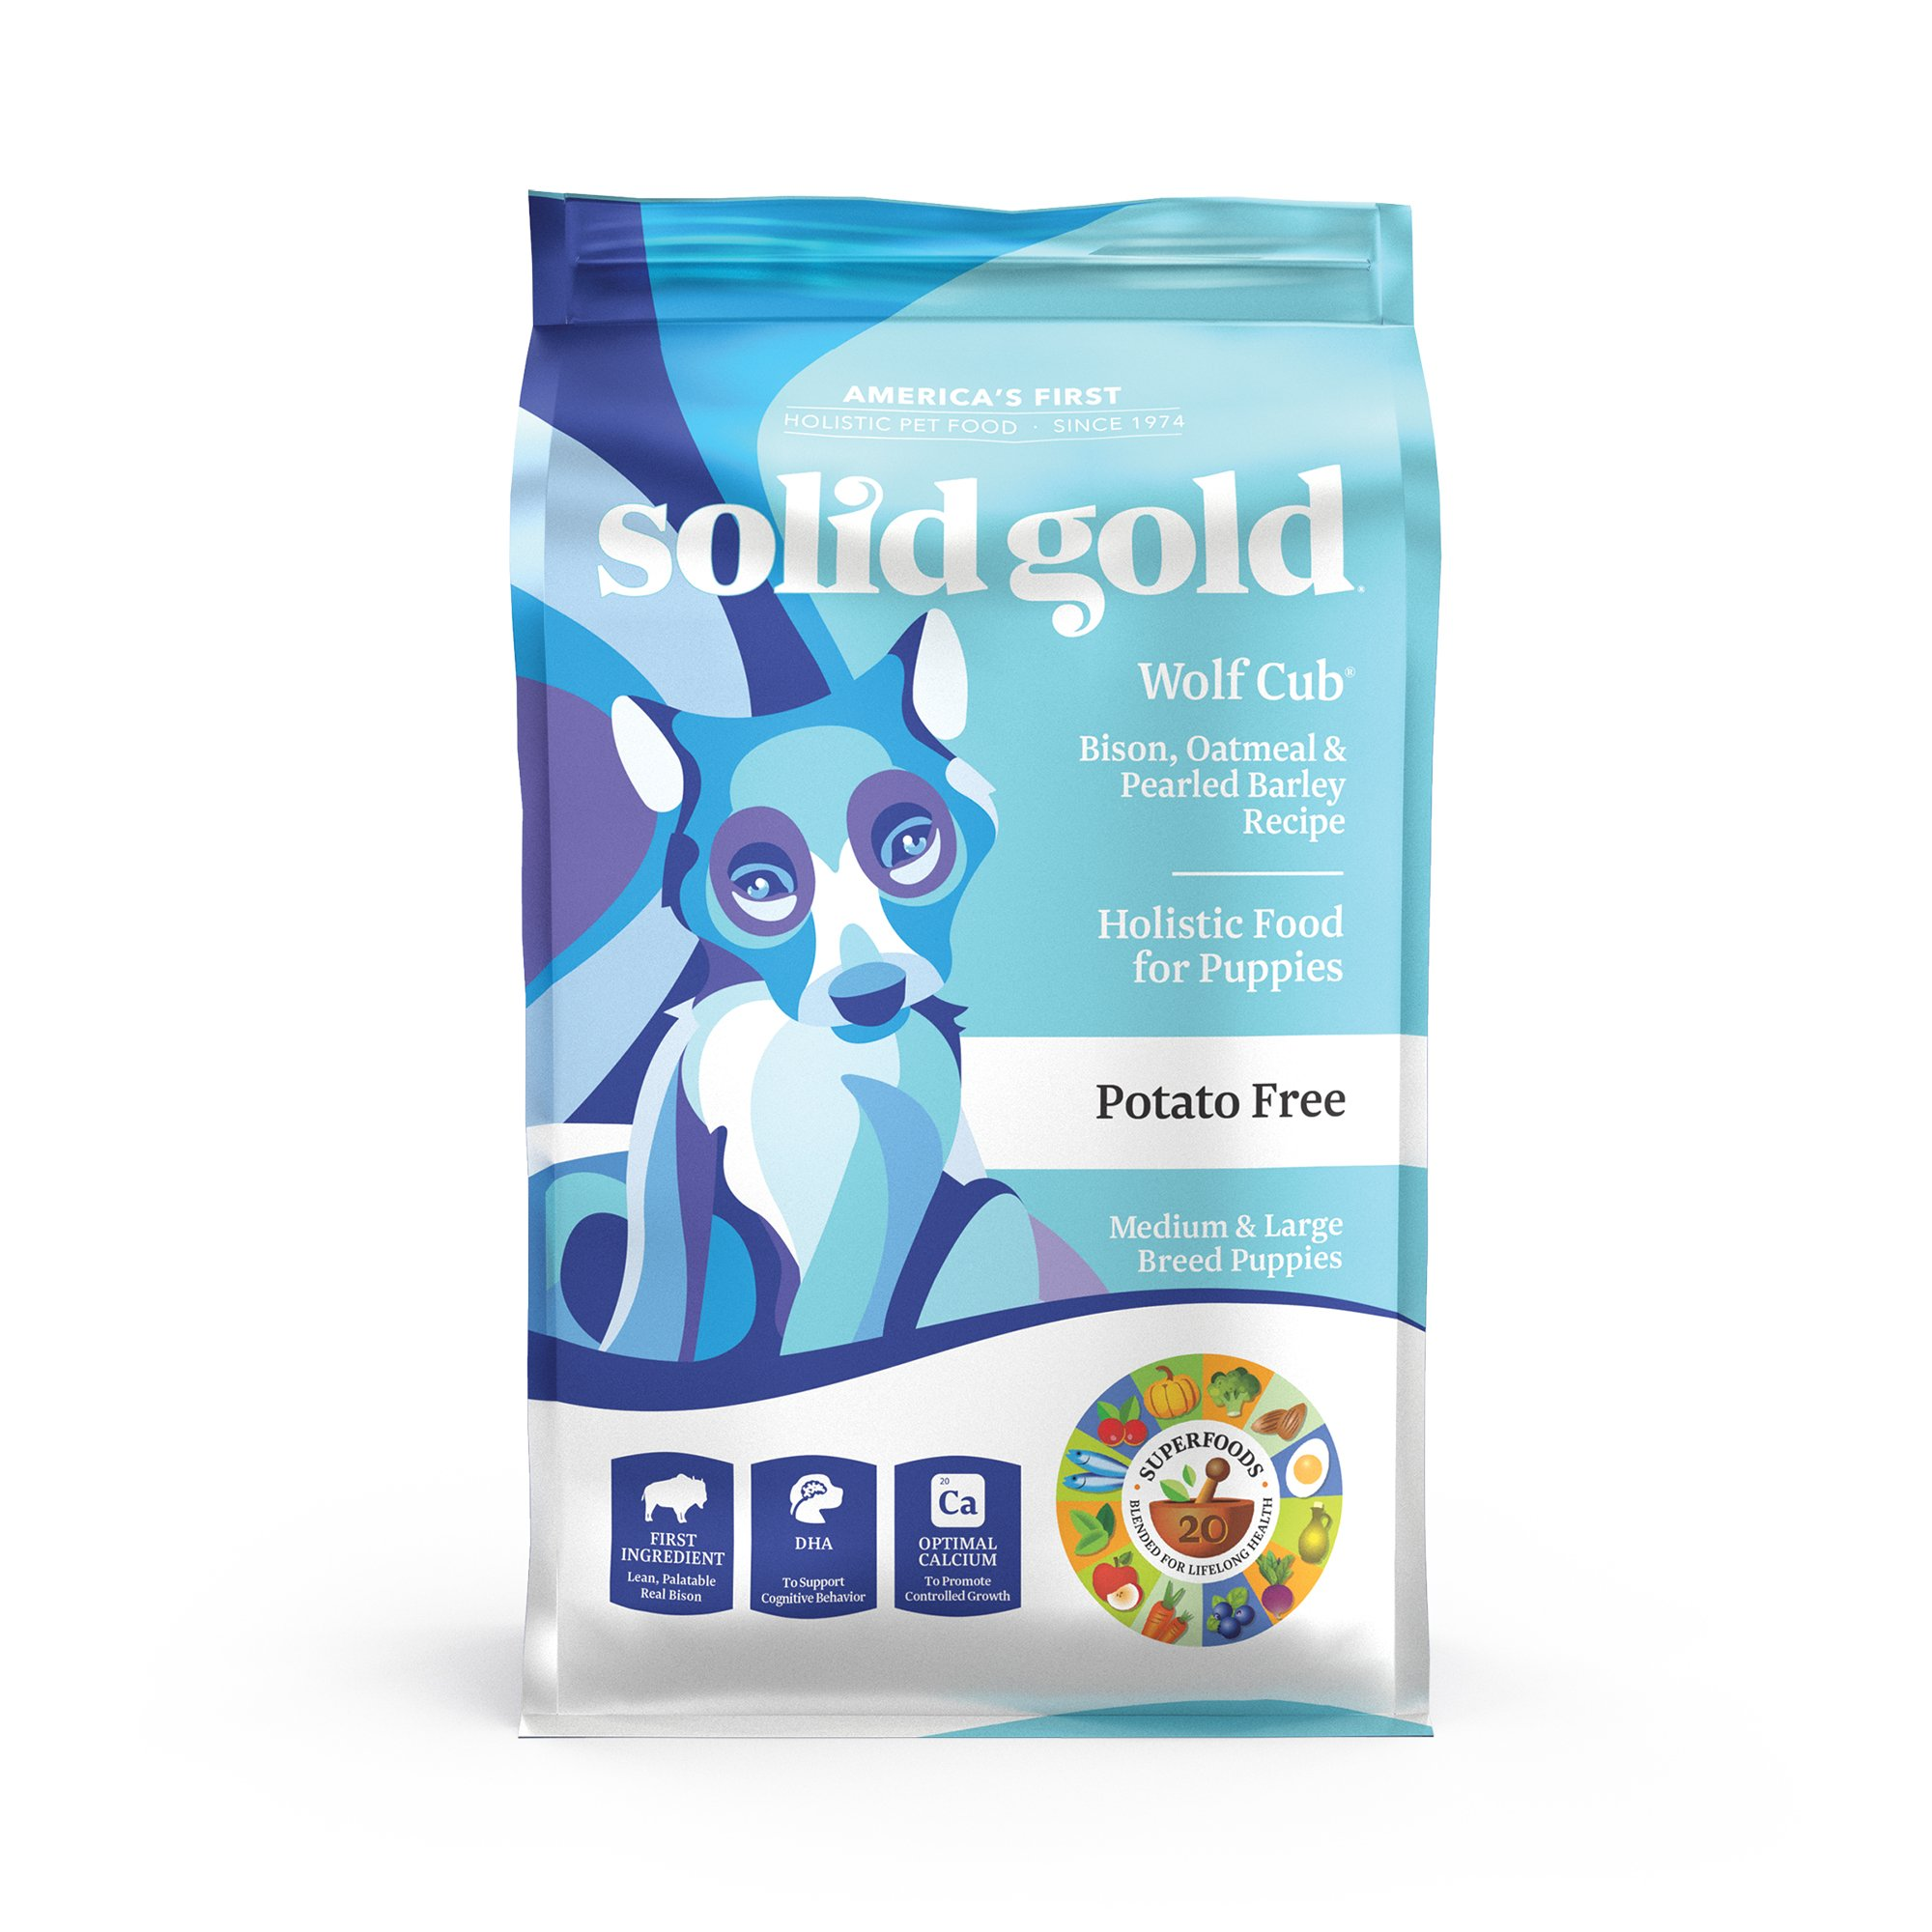 Solid Gold Wolf Cub Bison Oatmeal Puppy Food Petco